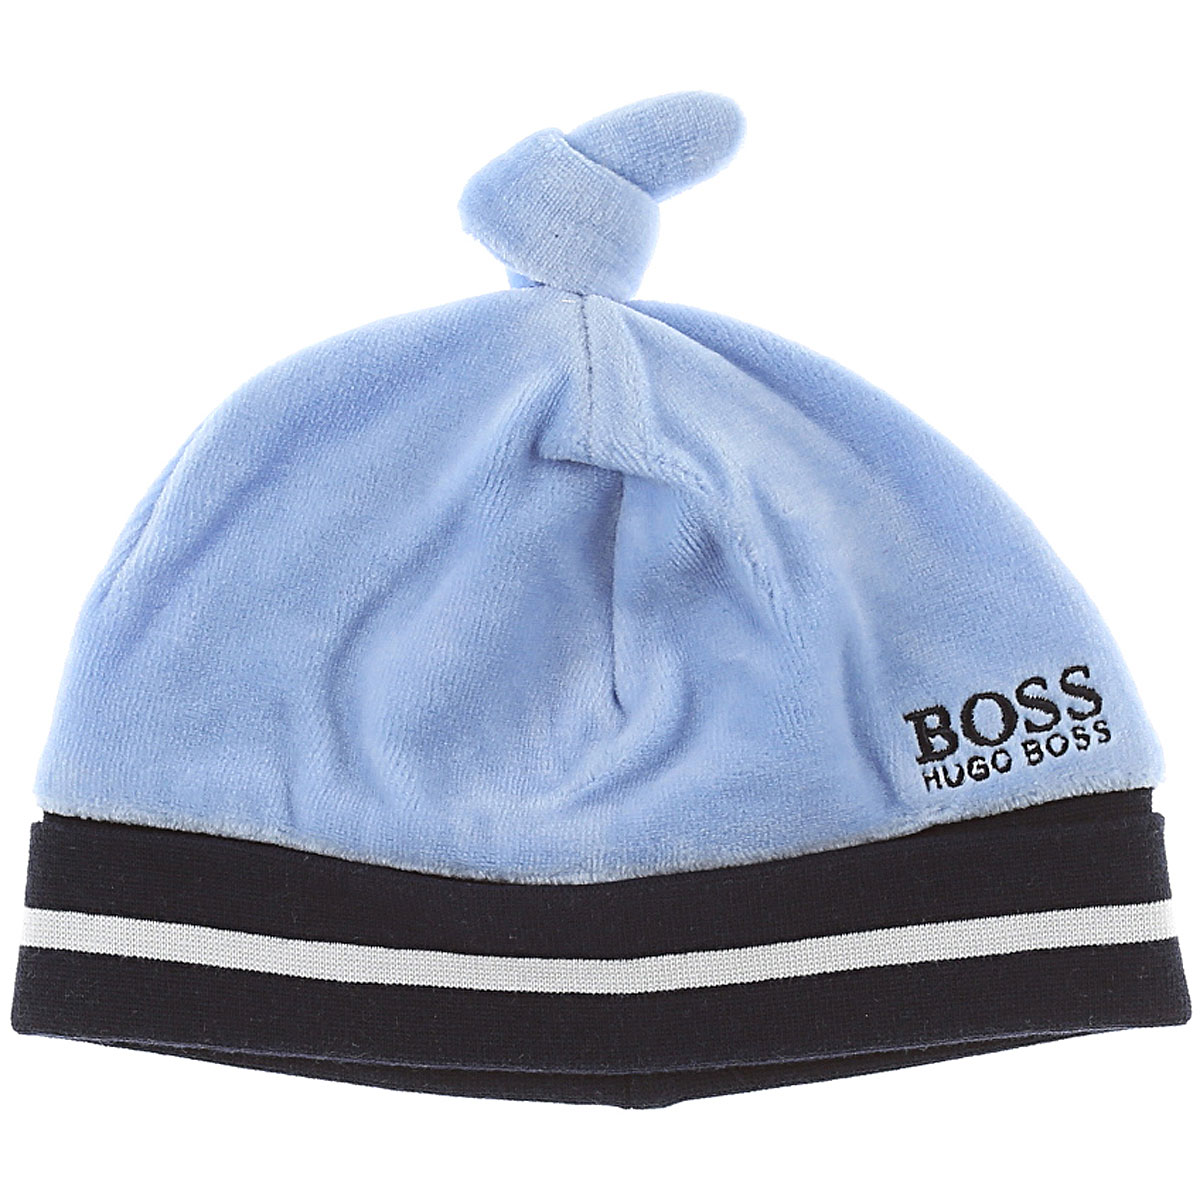 Image of Hugo Boss Baby Hats for Boys, Heavenly, Cotton, 2017, 44 46 48 50